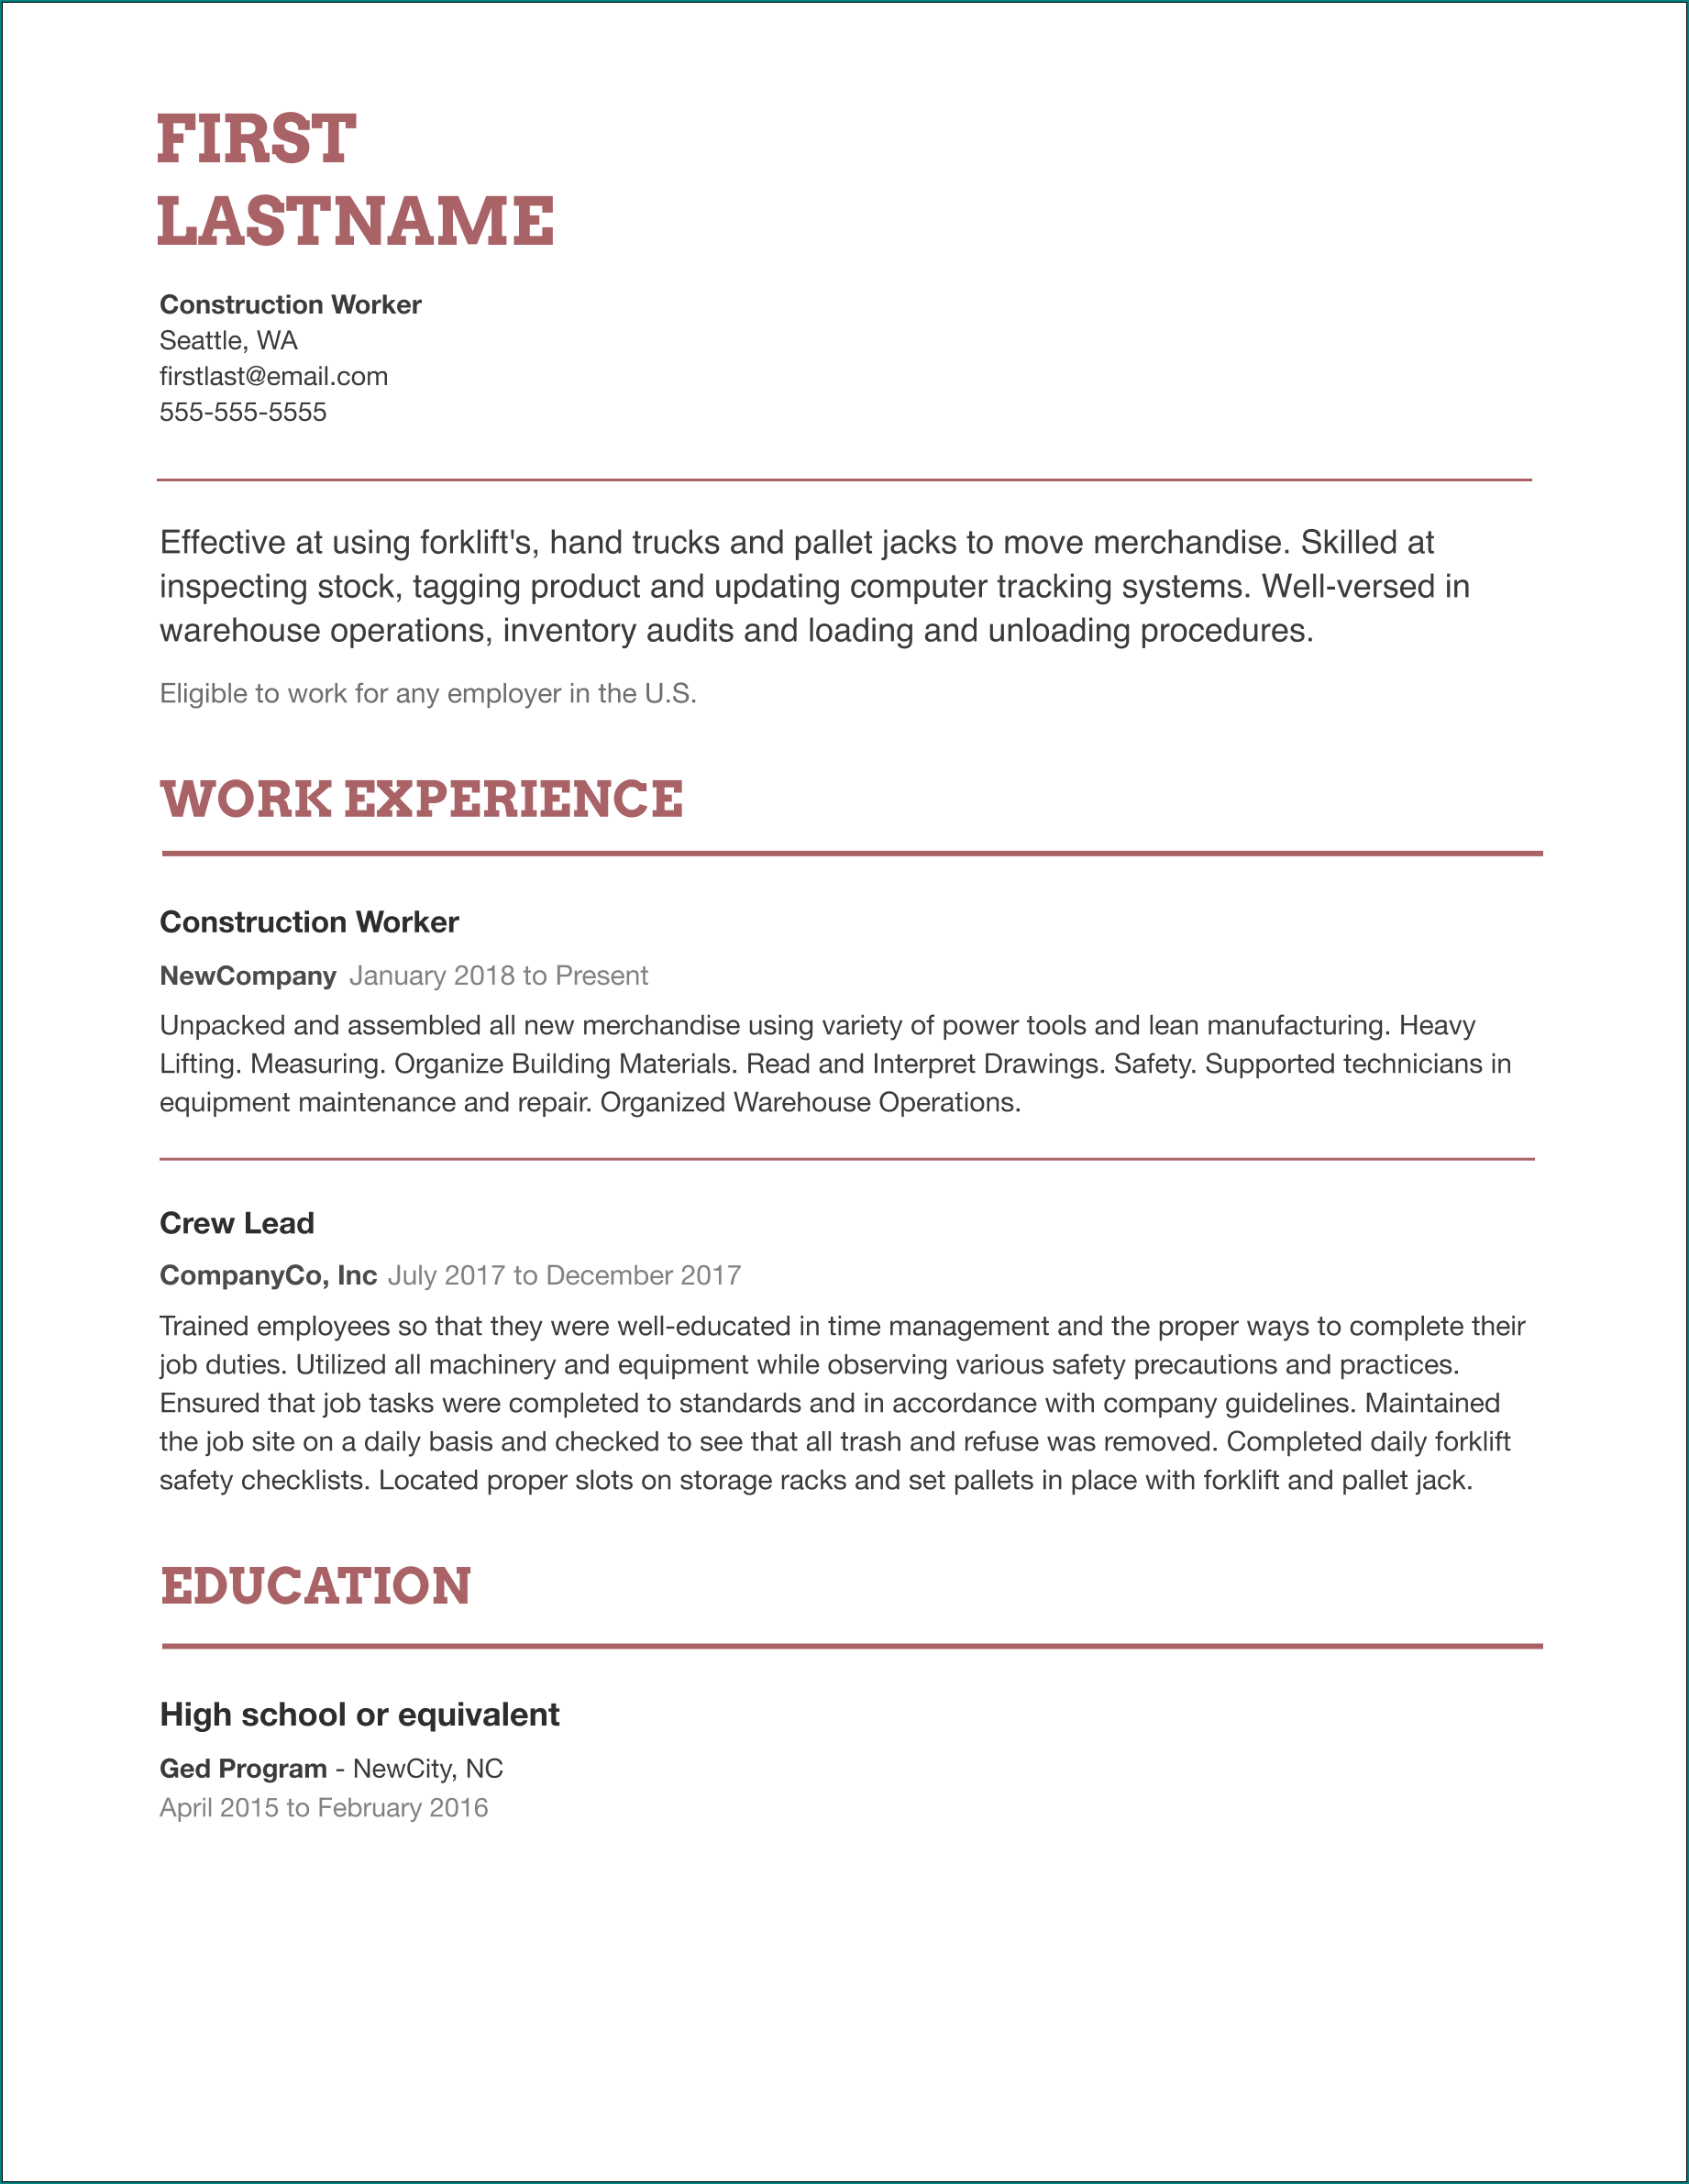 Sample of Basic Resume Template